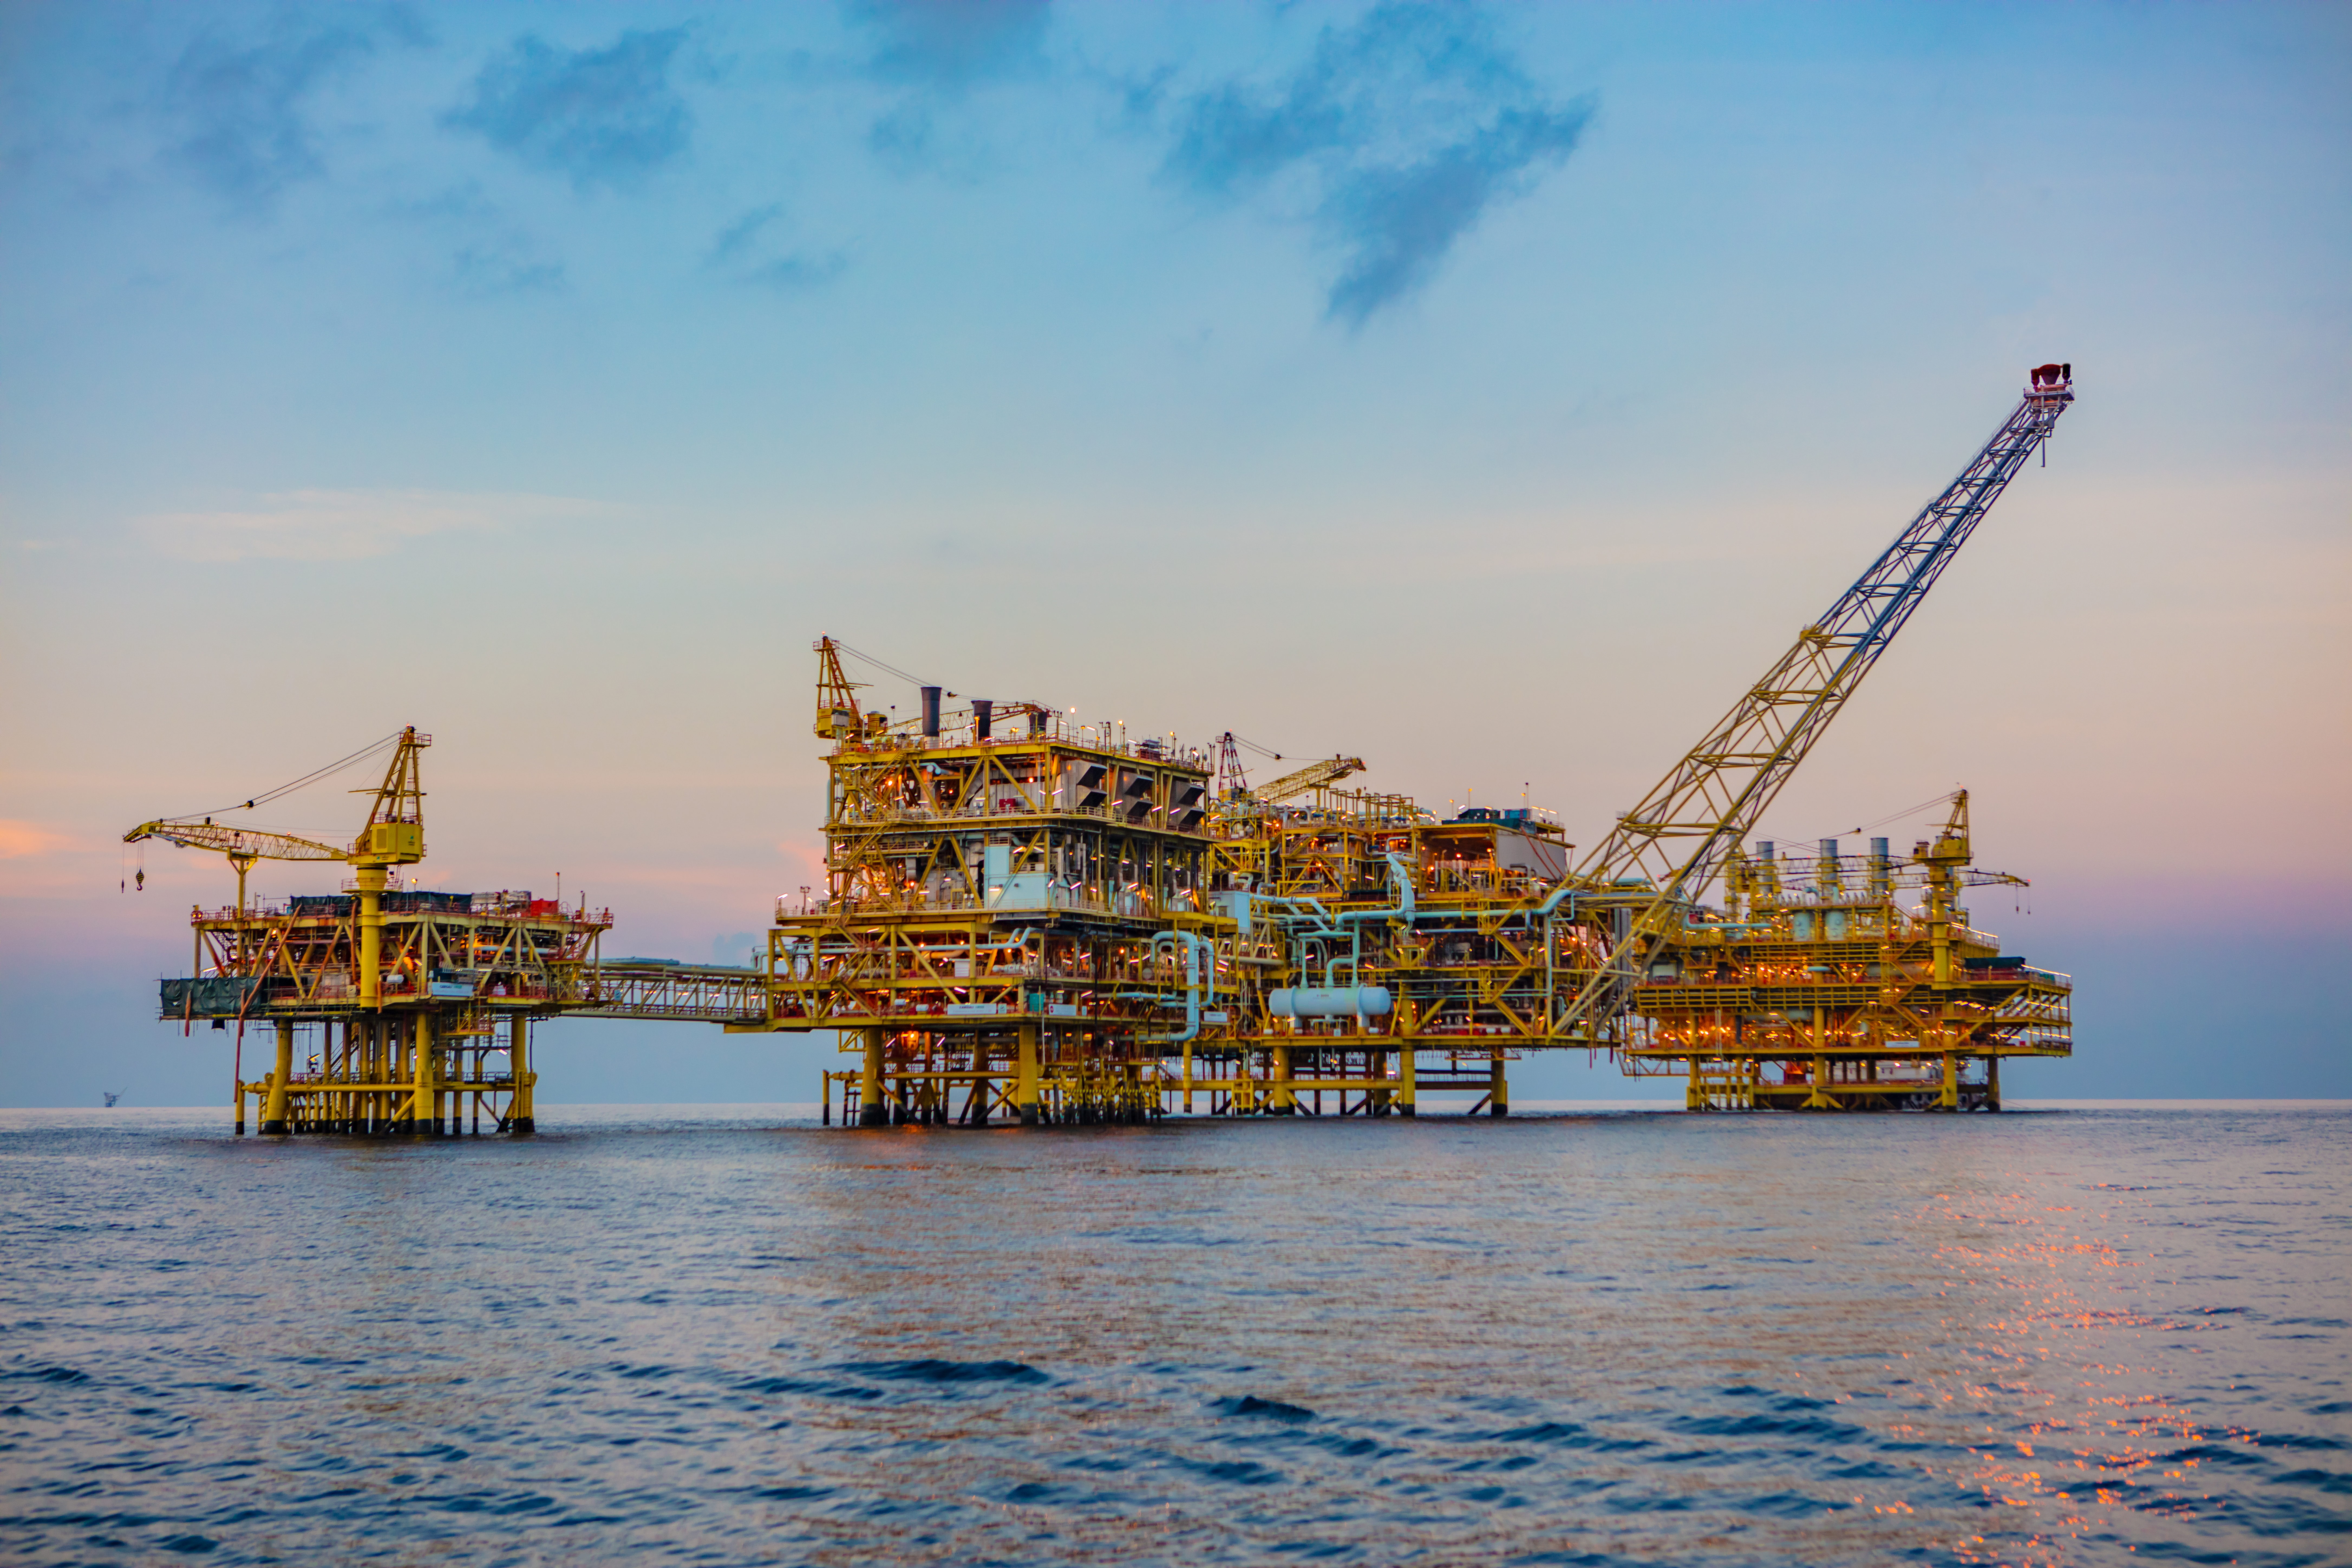 Key Players: Offshore Operators Foresee Vast Potential